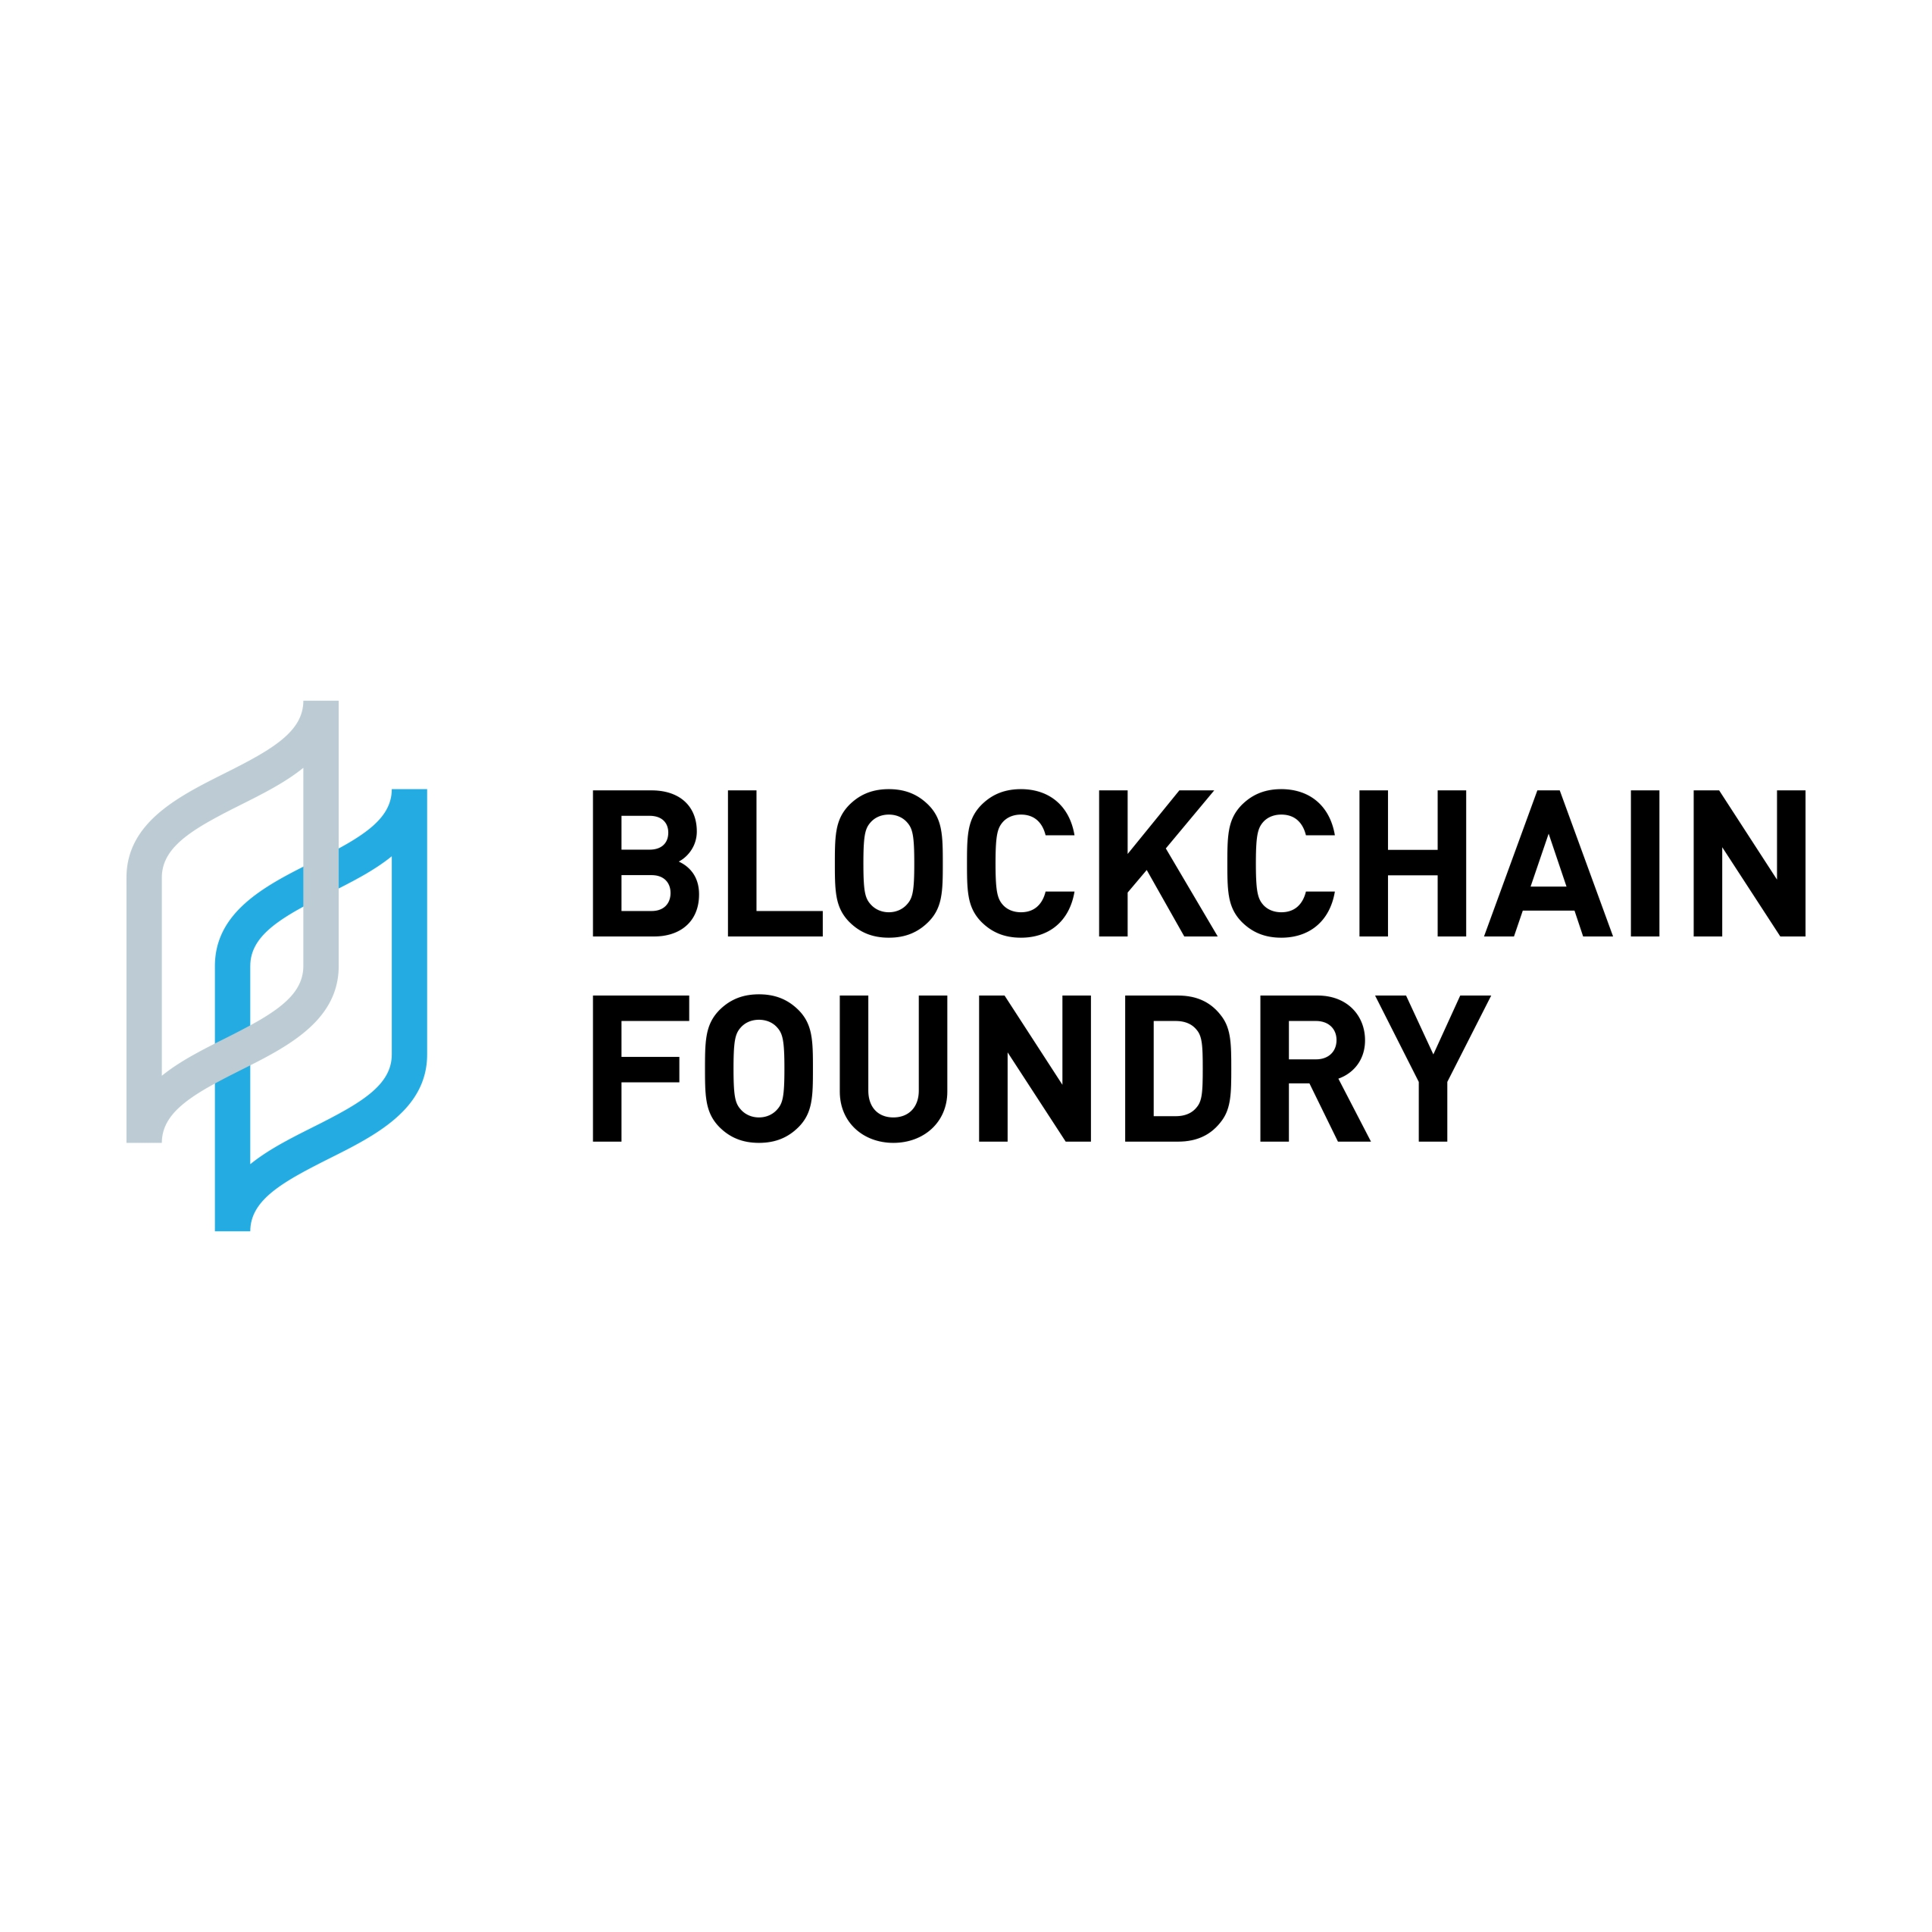 Blockchain Foundry Launches Campaign with AGORACOM for Online Marketing and Social Media Engagement